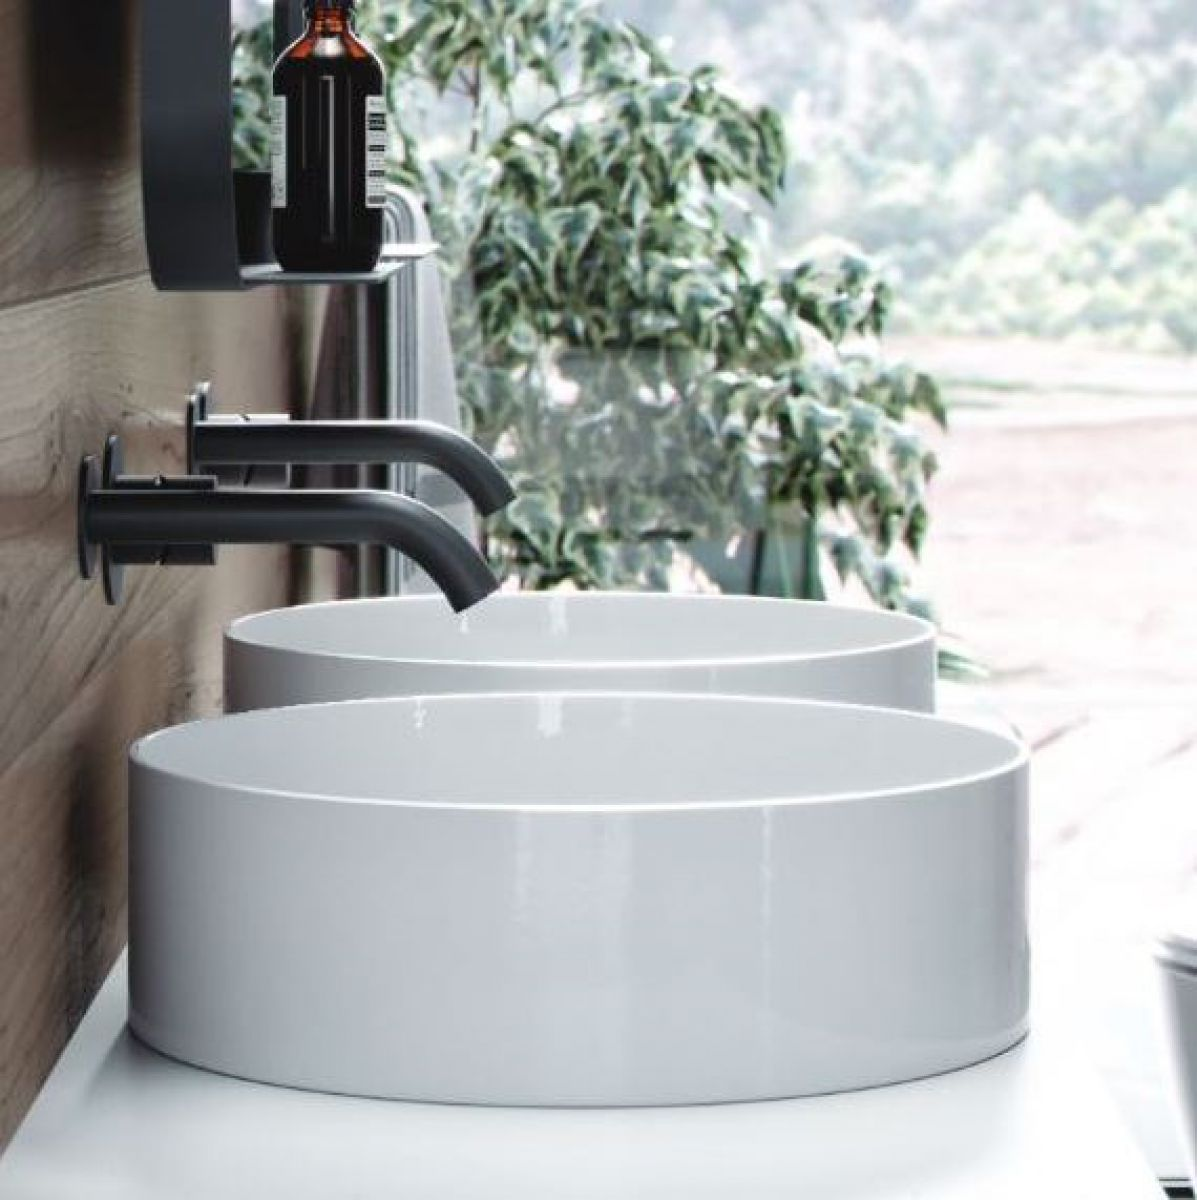 image example of a countertop bathroom sink